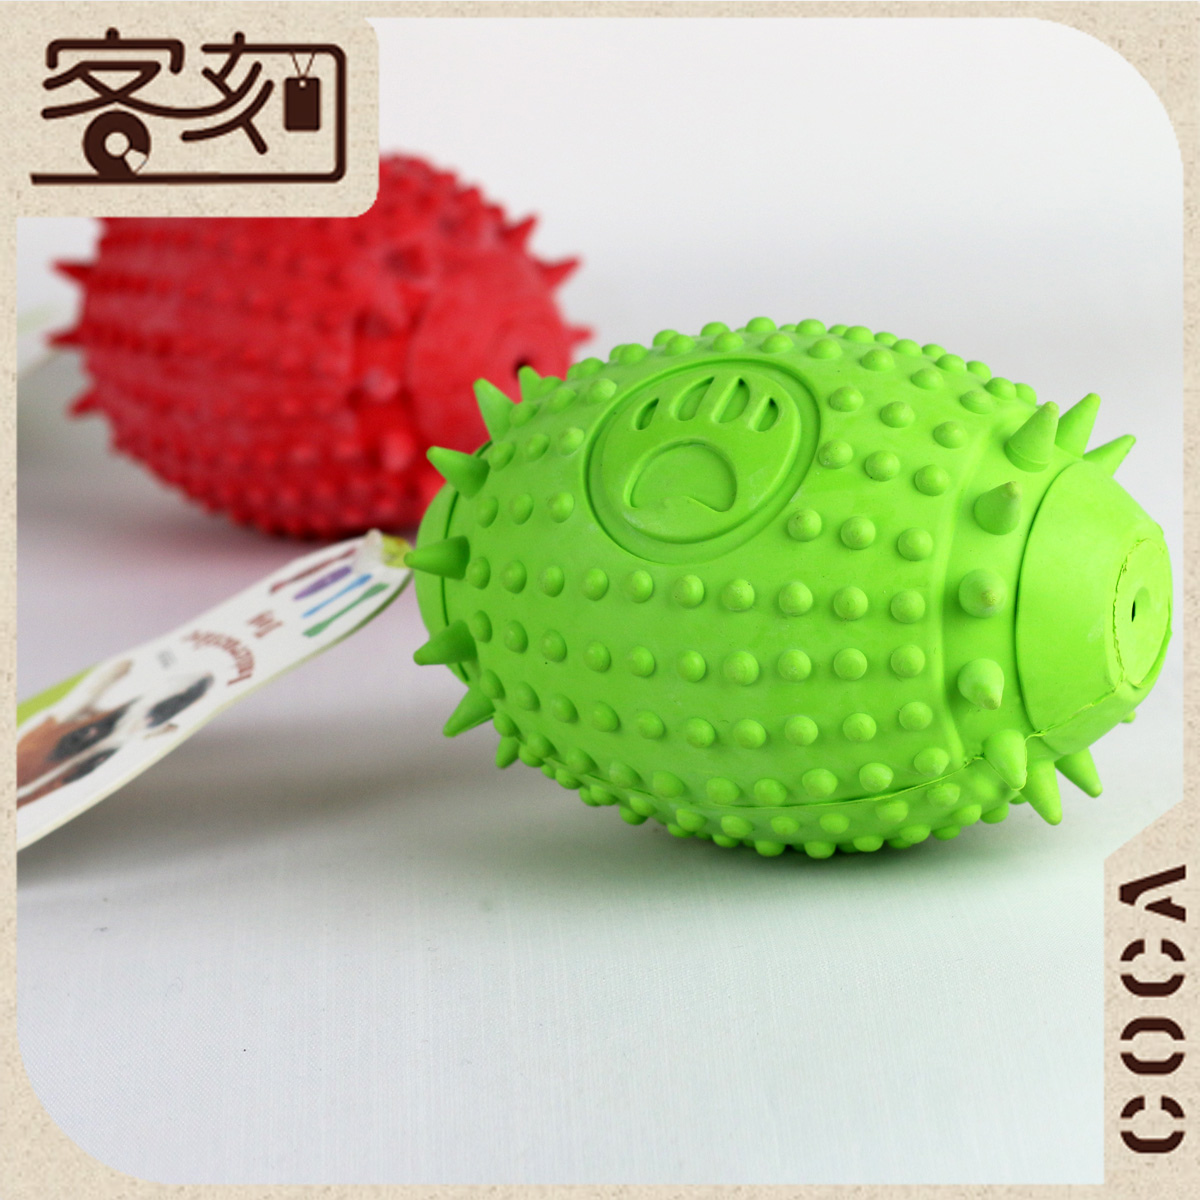 Odontoprisis dogcats puzzle rugby pet rubber ball vocalization chews hollow ball dog toys(China (Mainland))